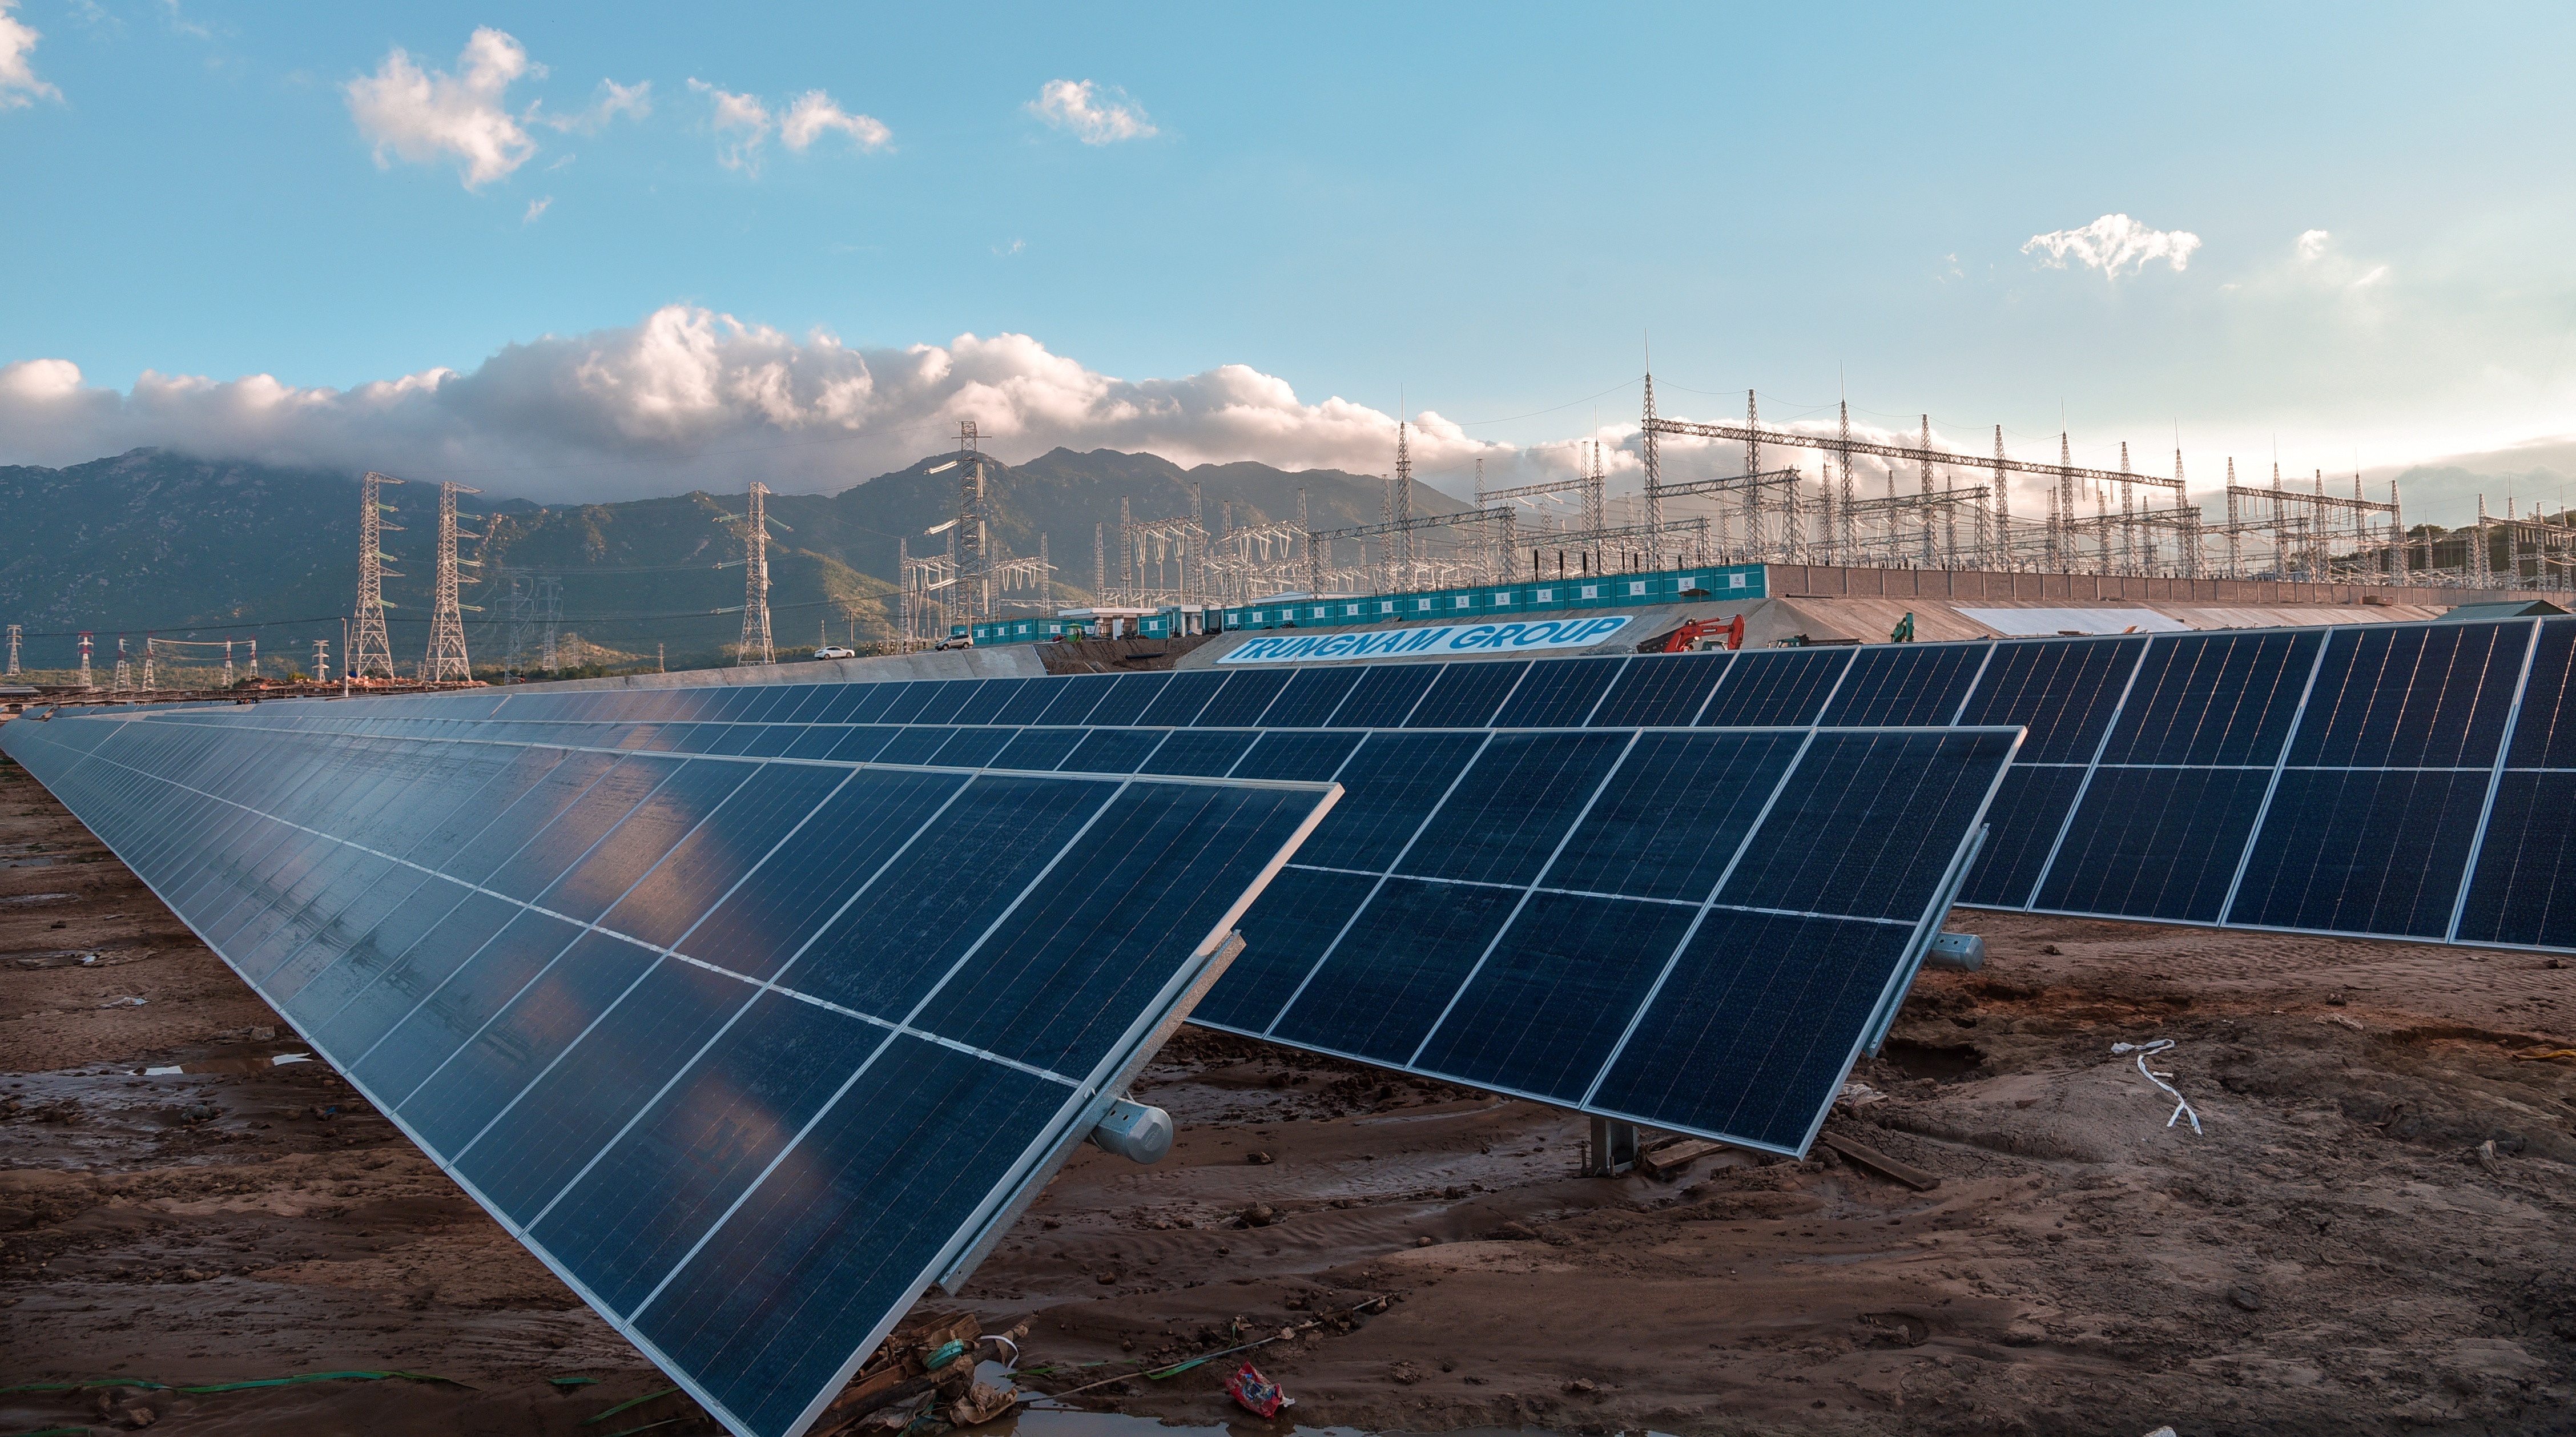 How do we get to net-zero emissions? 6 experts share their views